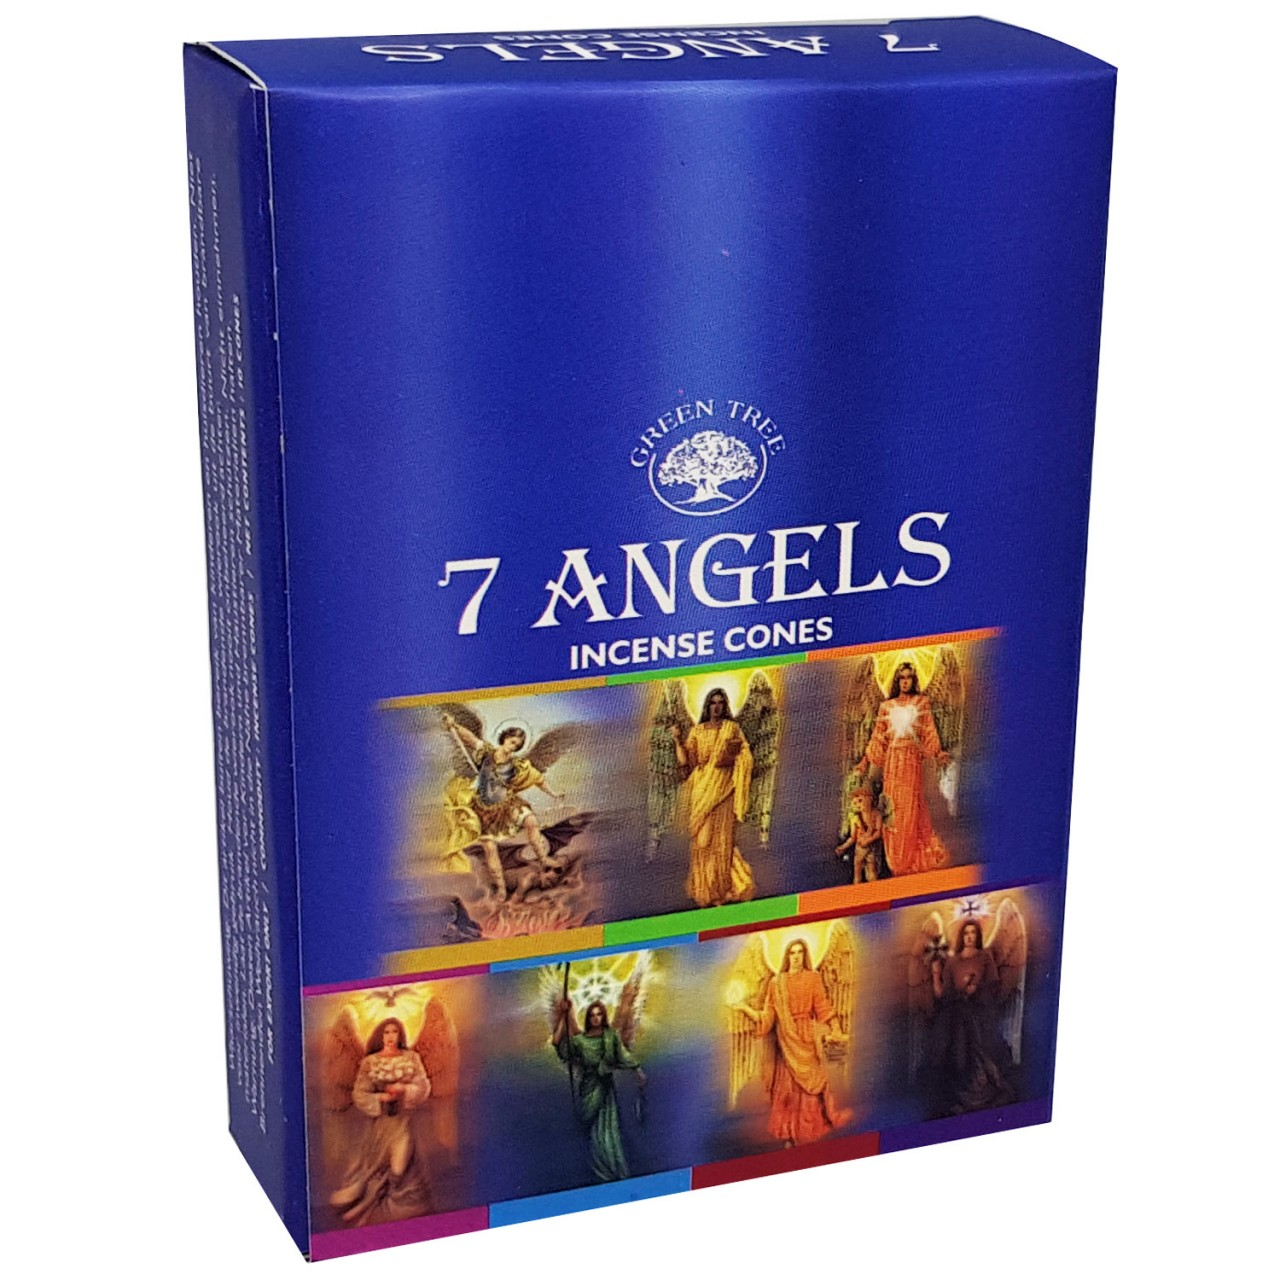 Green Tree Incense Cones - 7 ANGELS